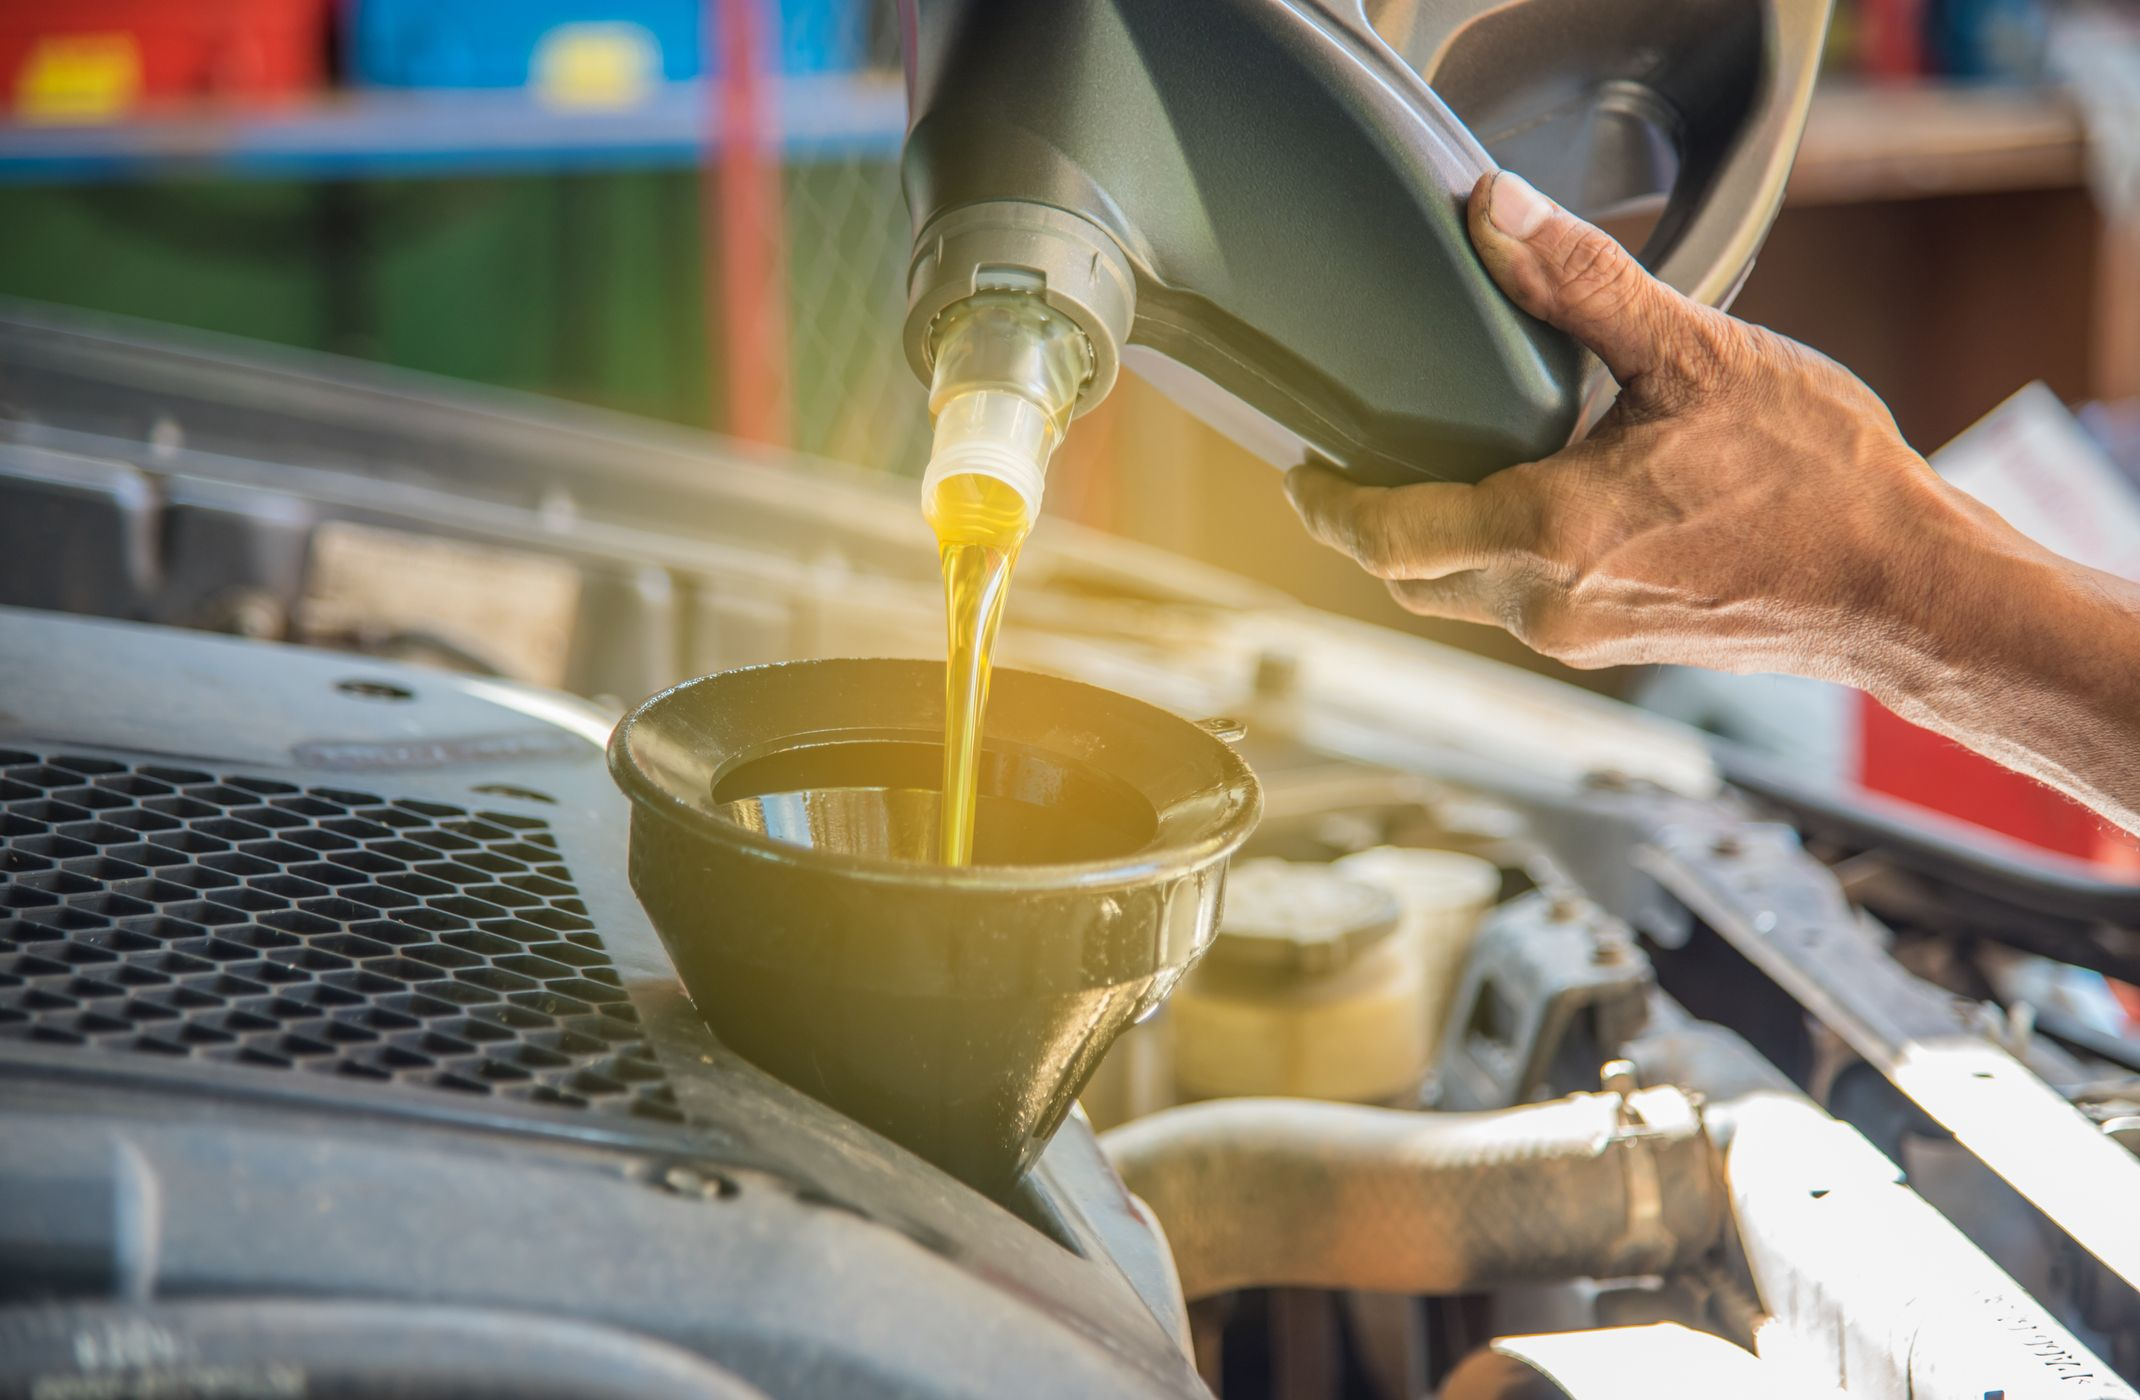 Motor Oil for Cars - How To Pick The Right Engine Oil